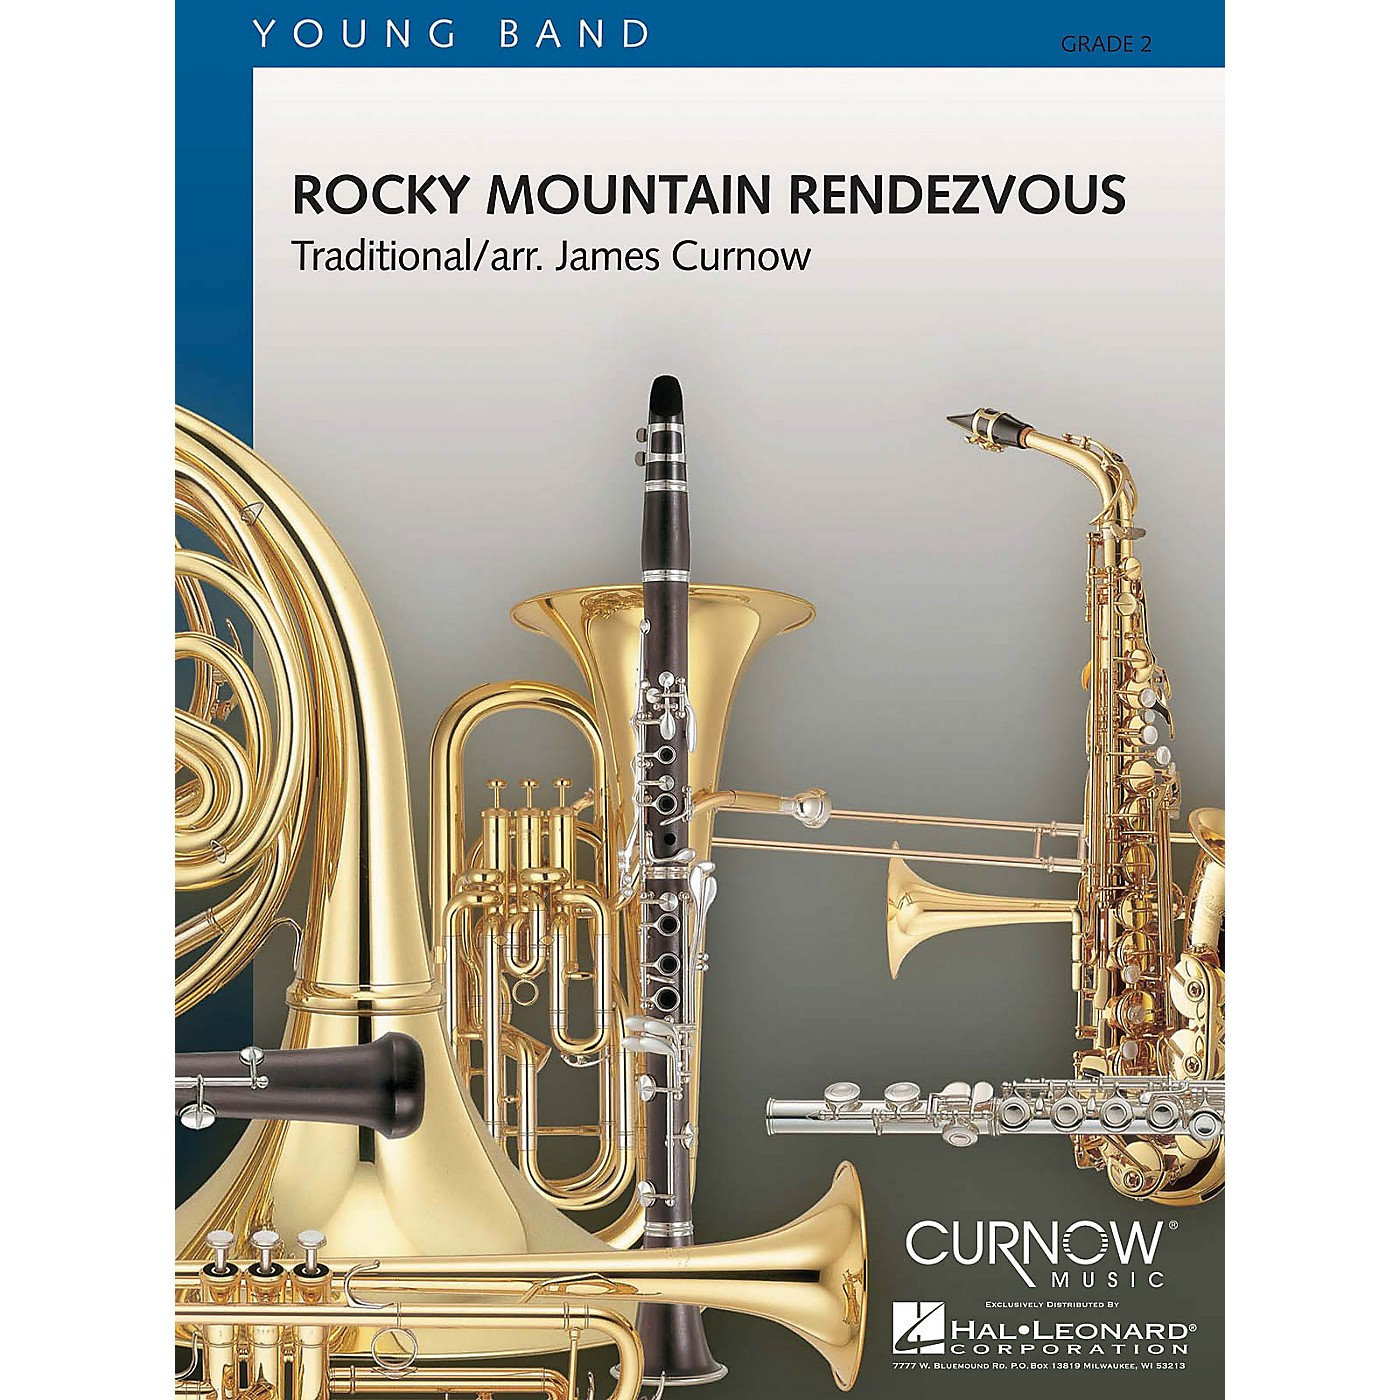 Curnow Music Rocky Mountain Rendezvous (Grade 2 - Score and Parts) Concert Band Level 2 Composed by James Curnow thumbnail